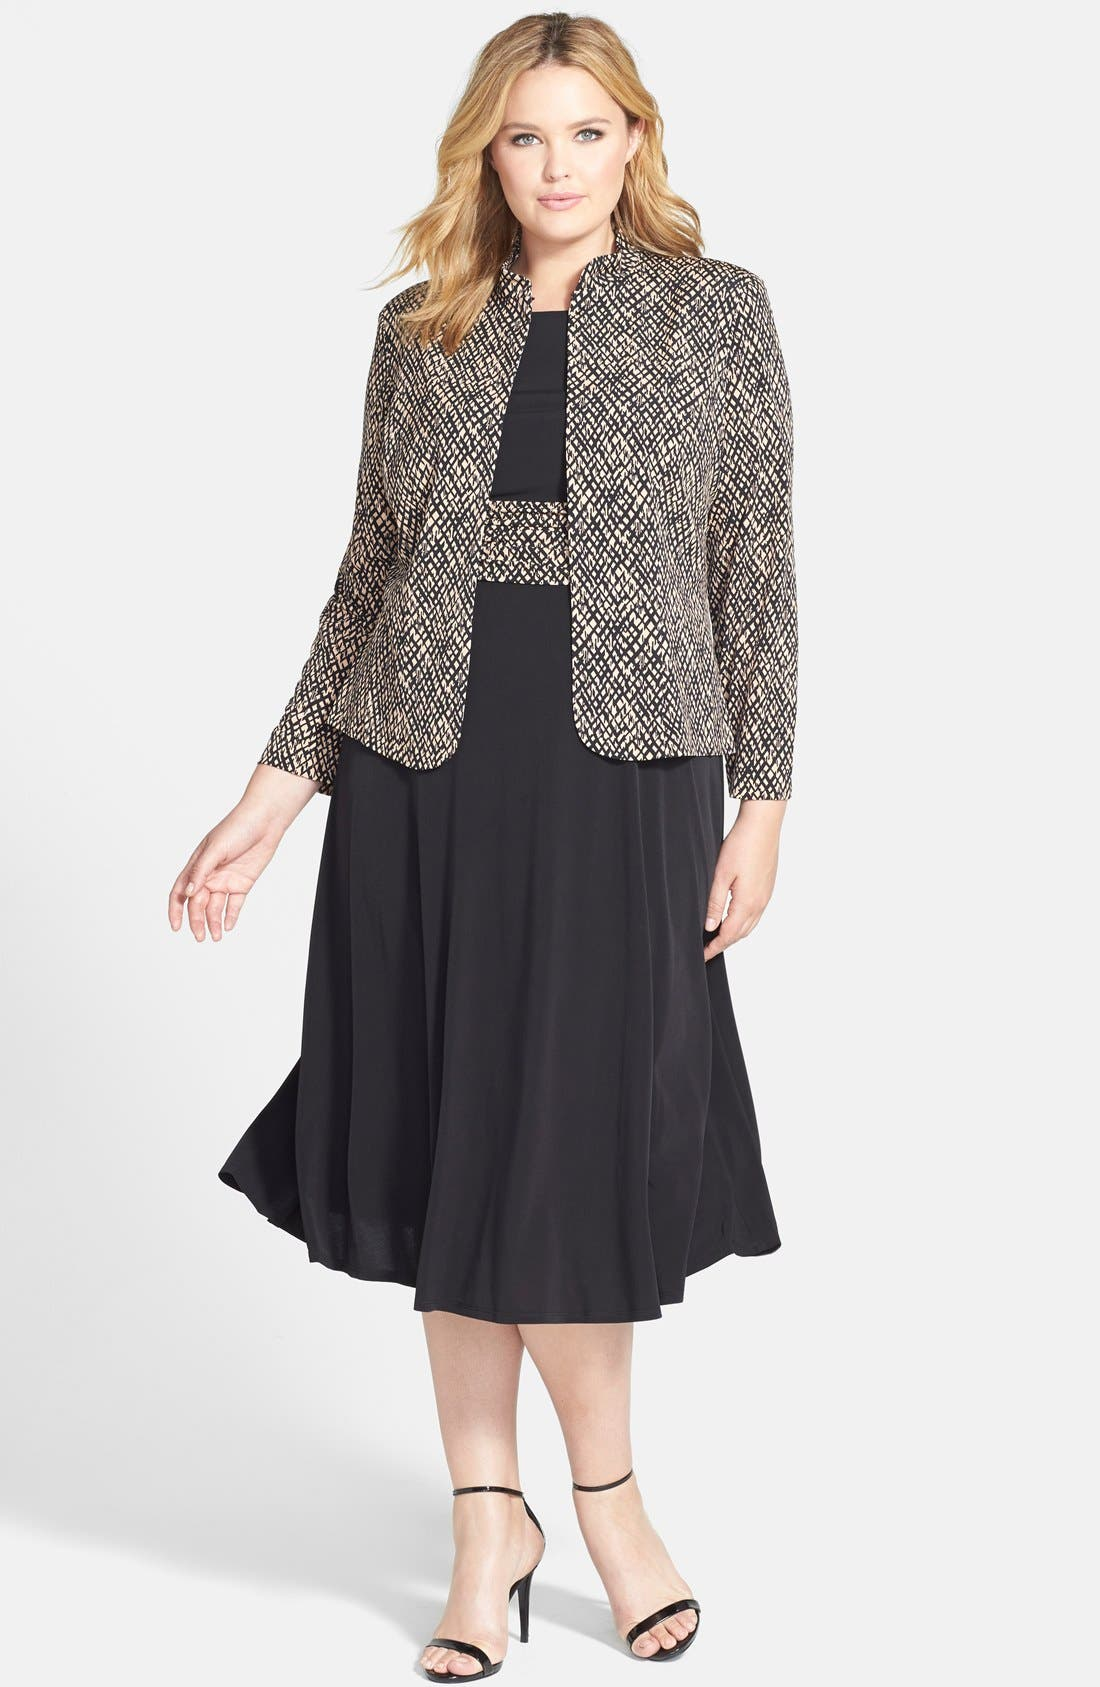 Alternate Image 1 Selected - Jessica Howard Ruched Waist Dress & Jacket (Plus Size)